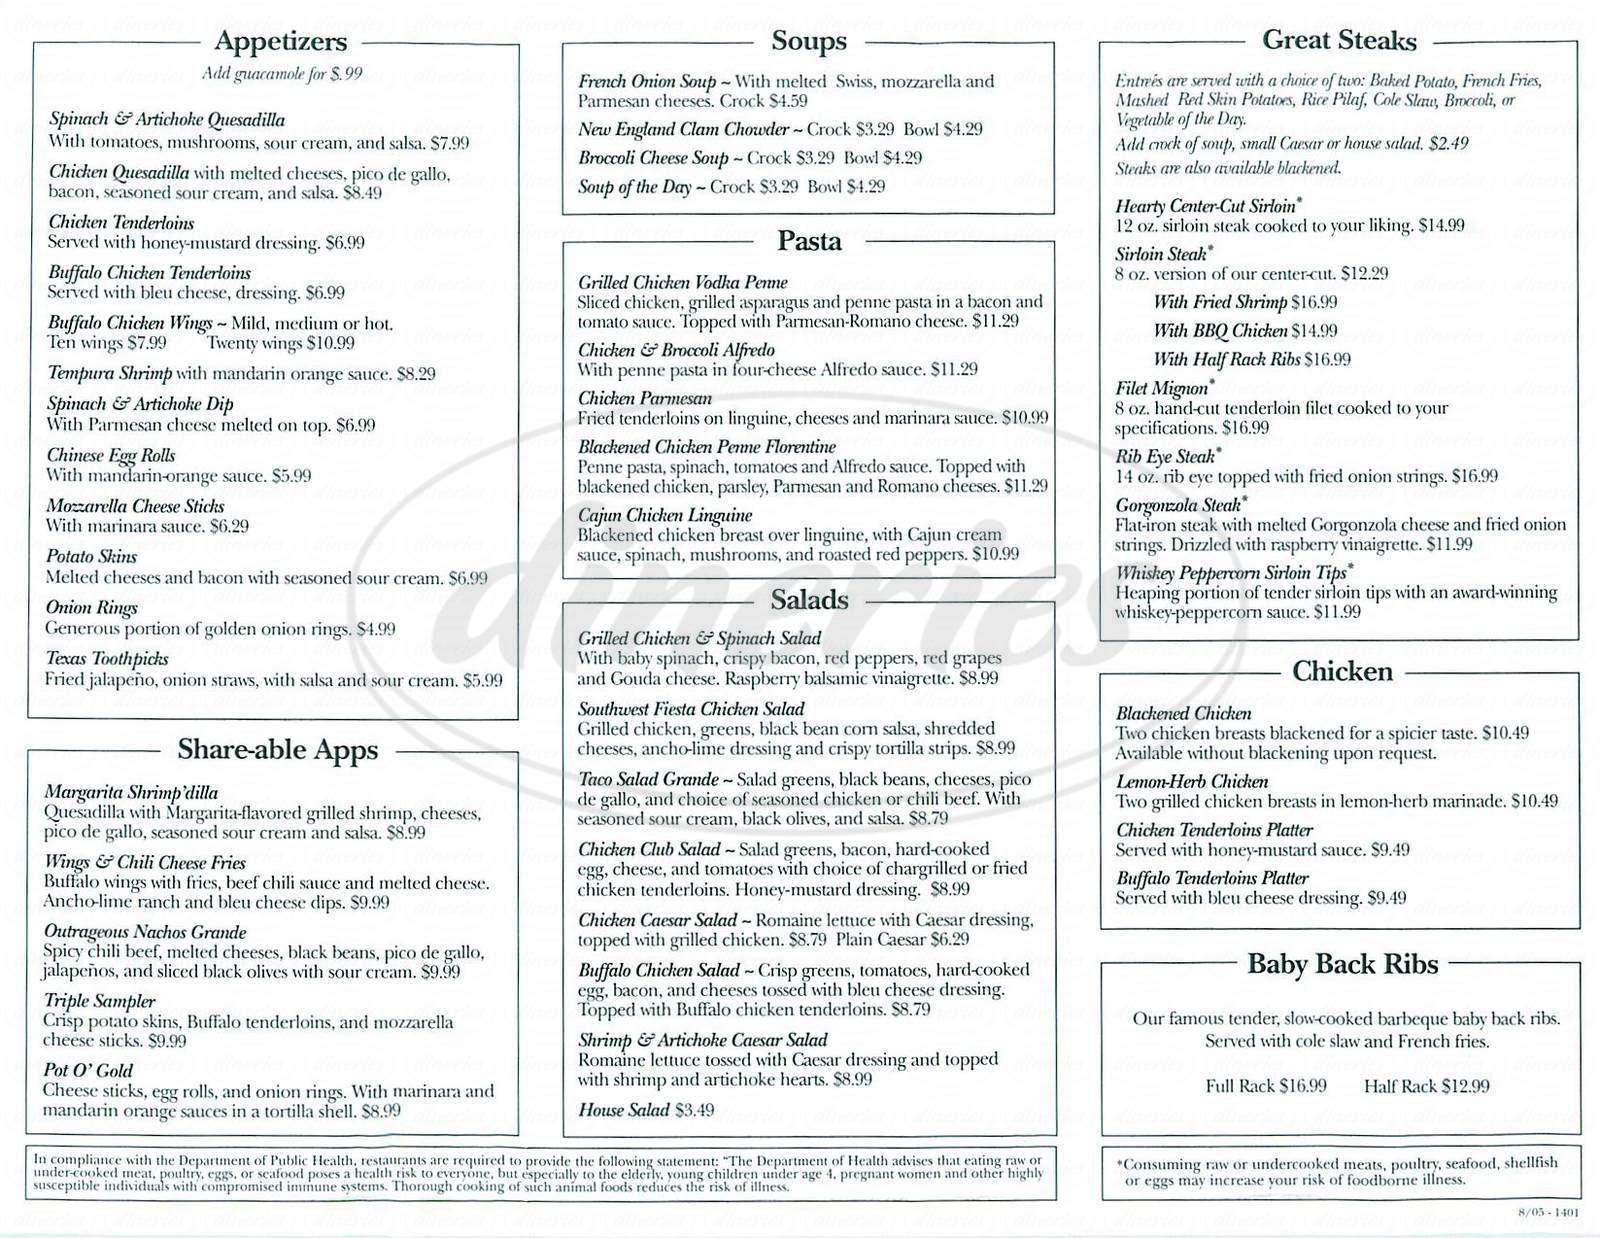 menu for Ground Round Grill and Bar